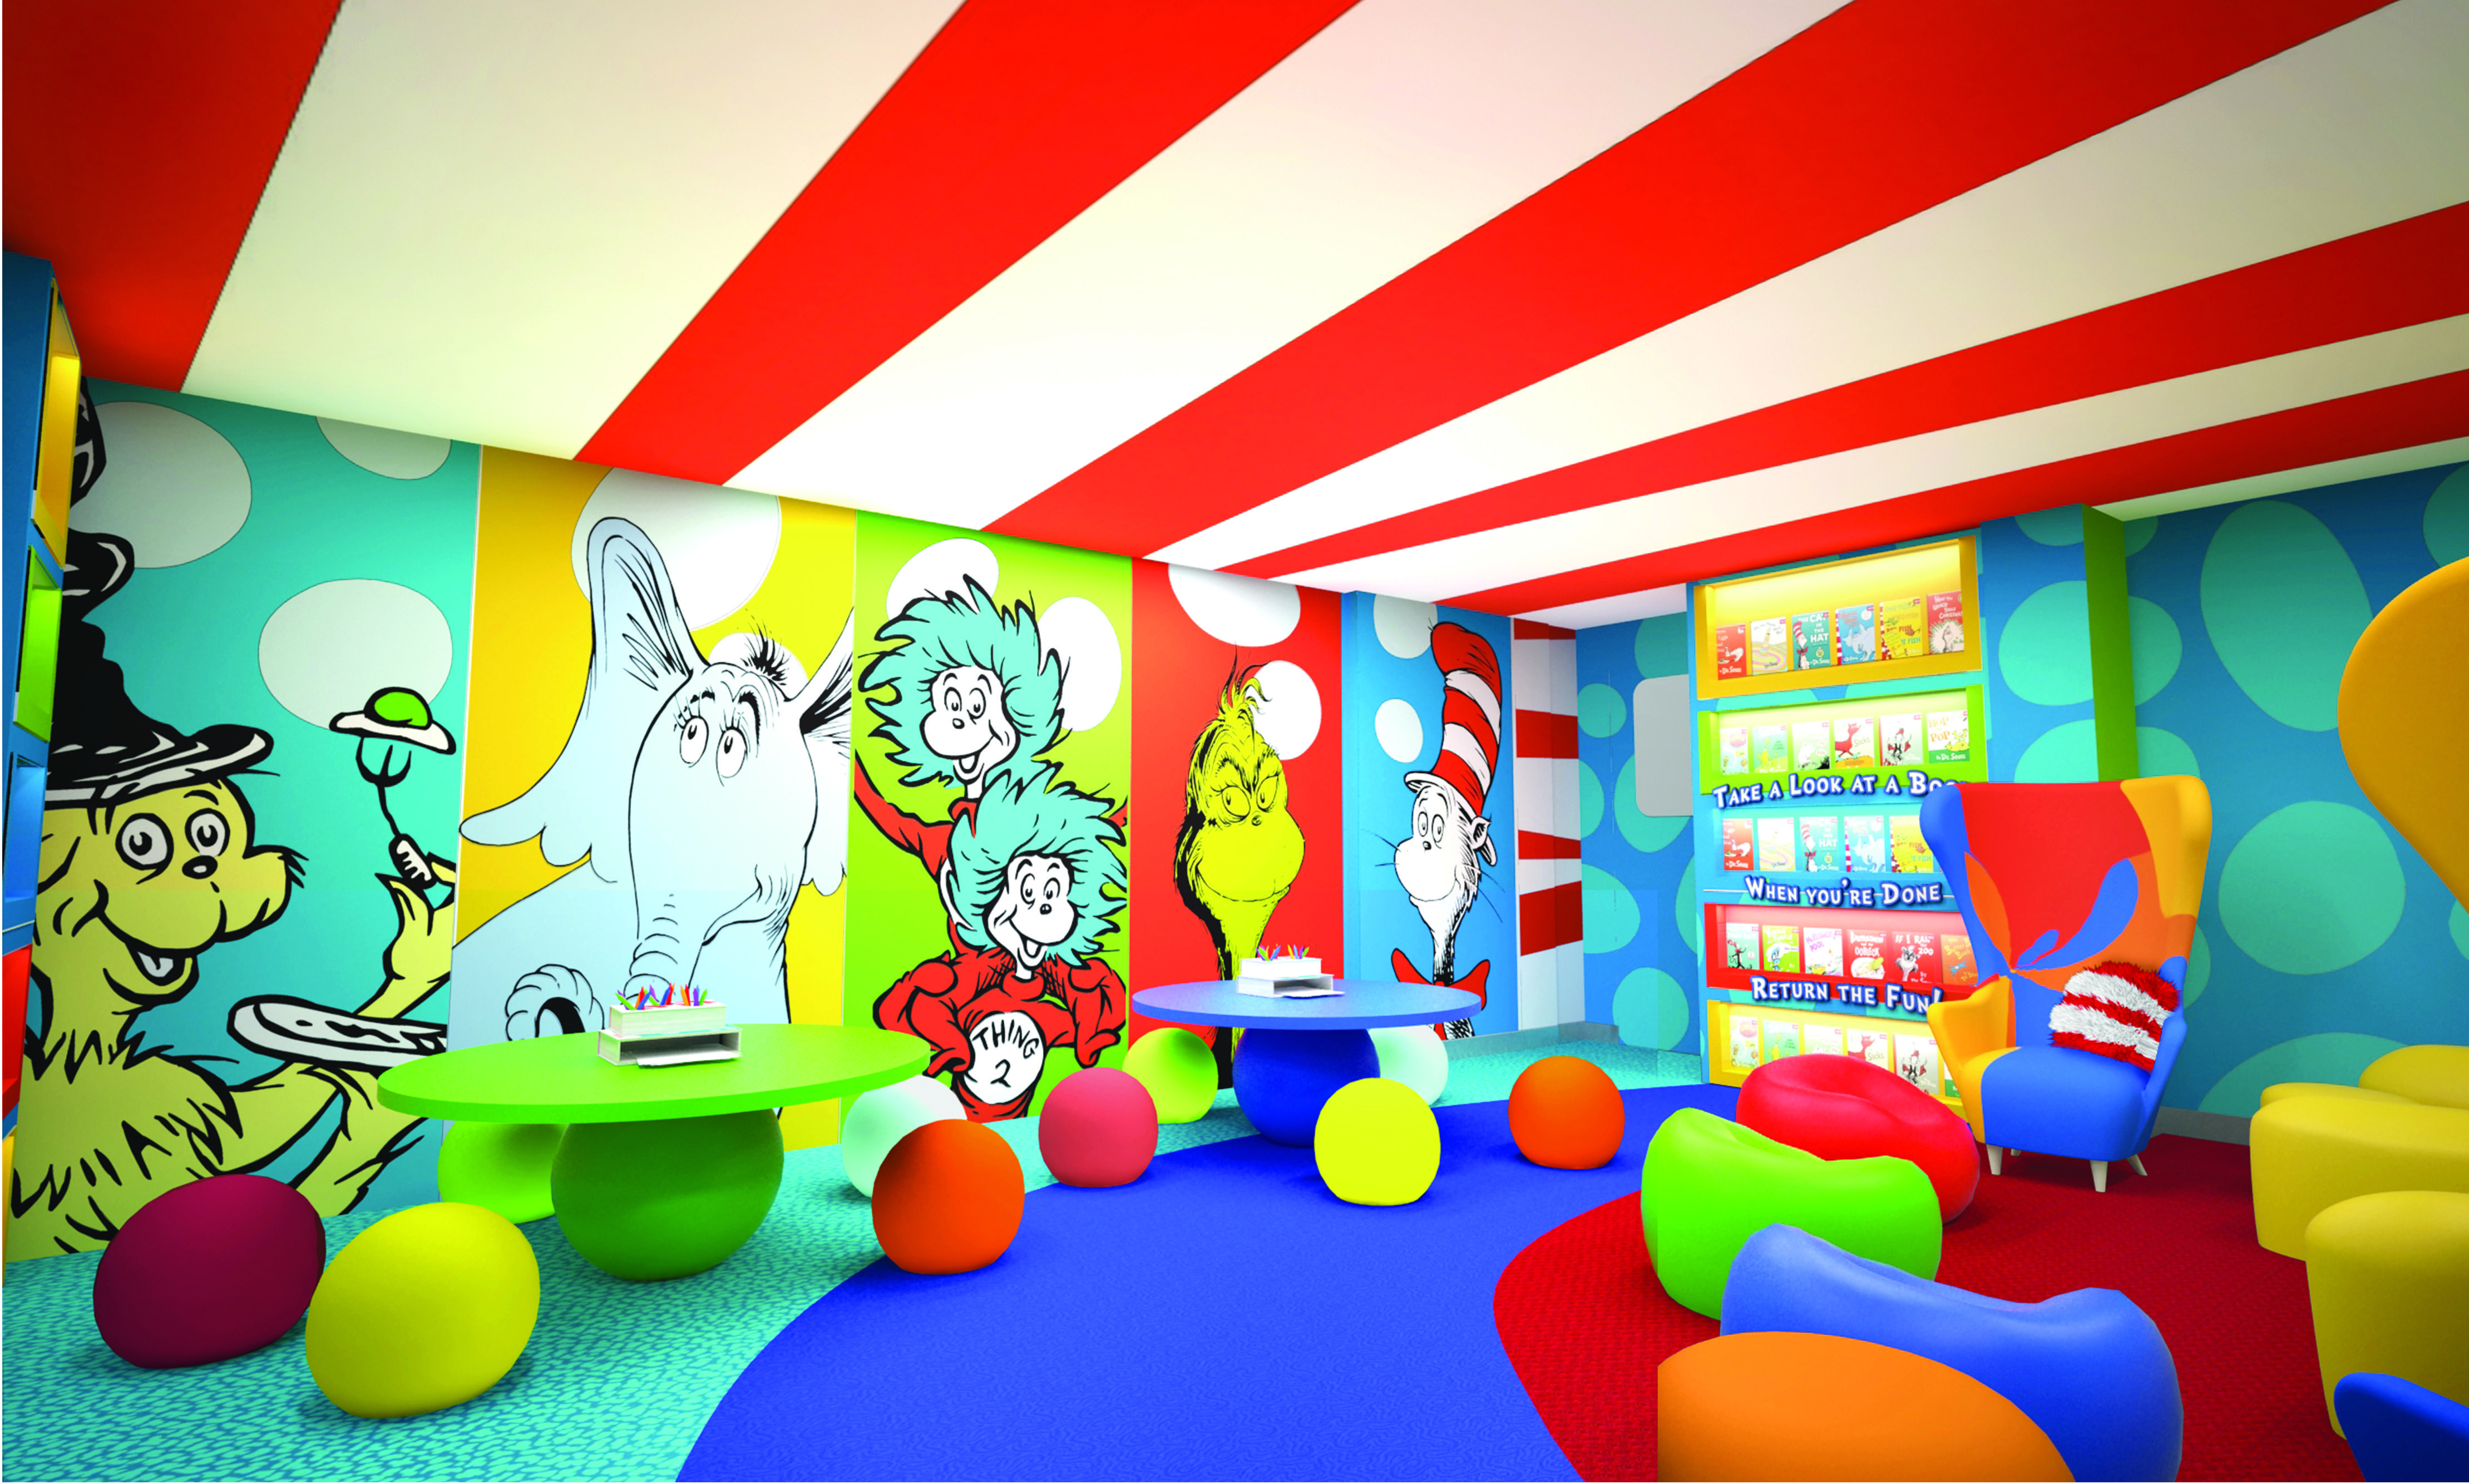 whimsical world of dr. suess | ... shapes and funky furniture inspired by the whimsical world of dr seuss